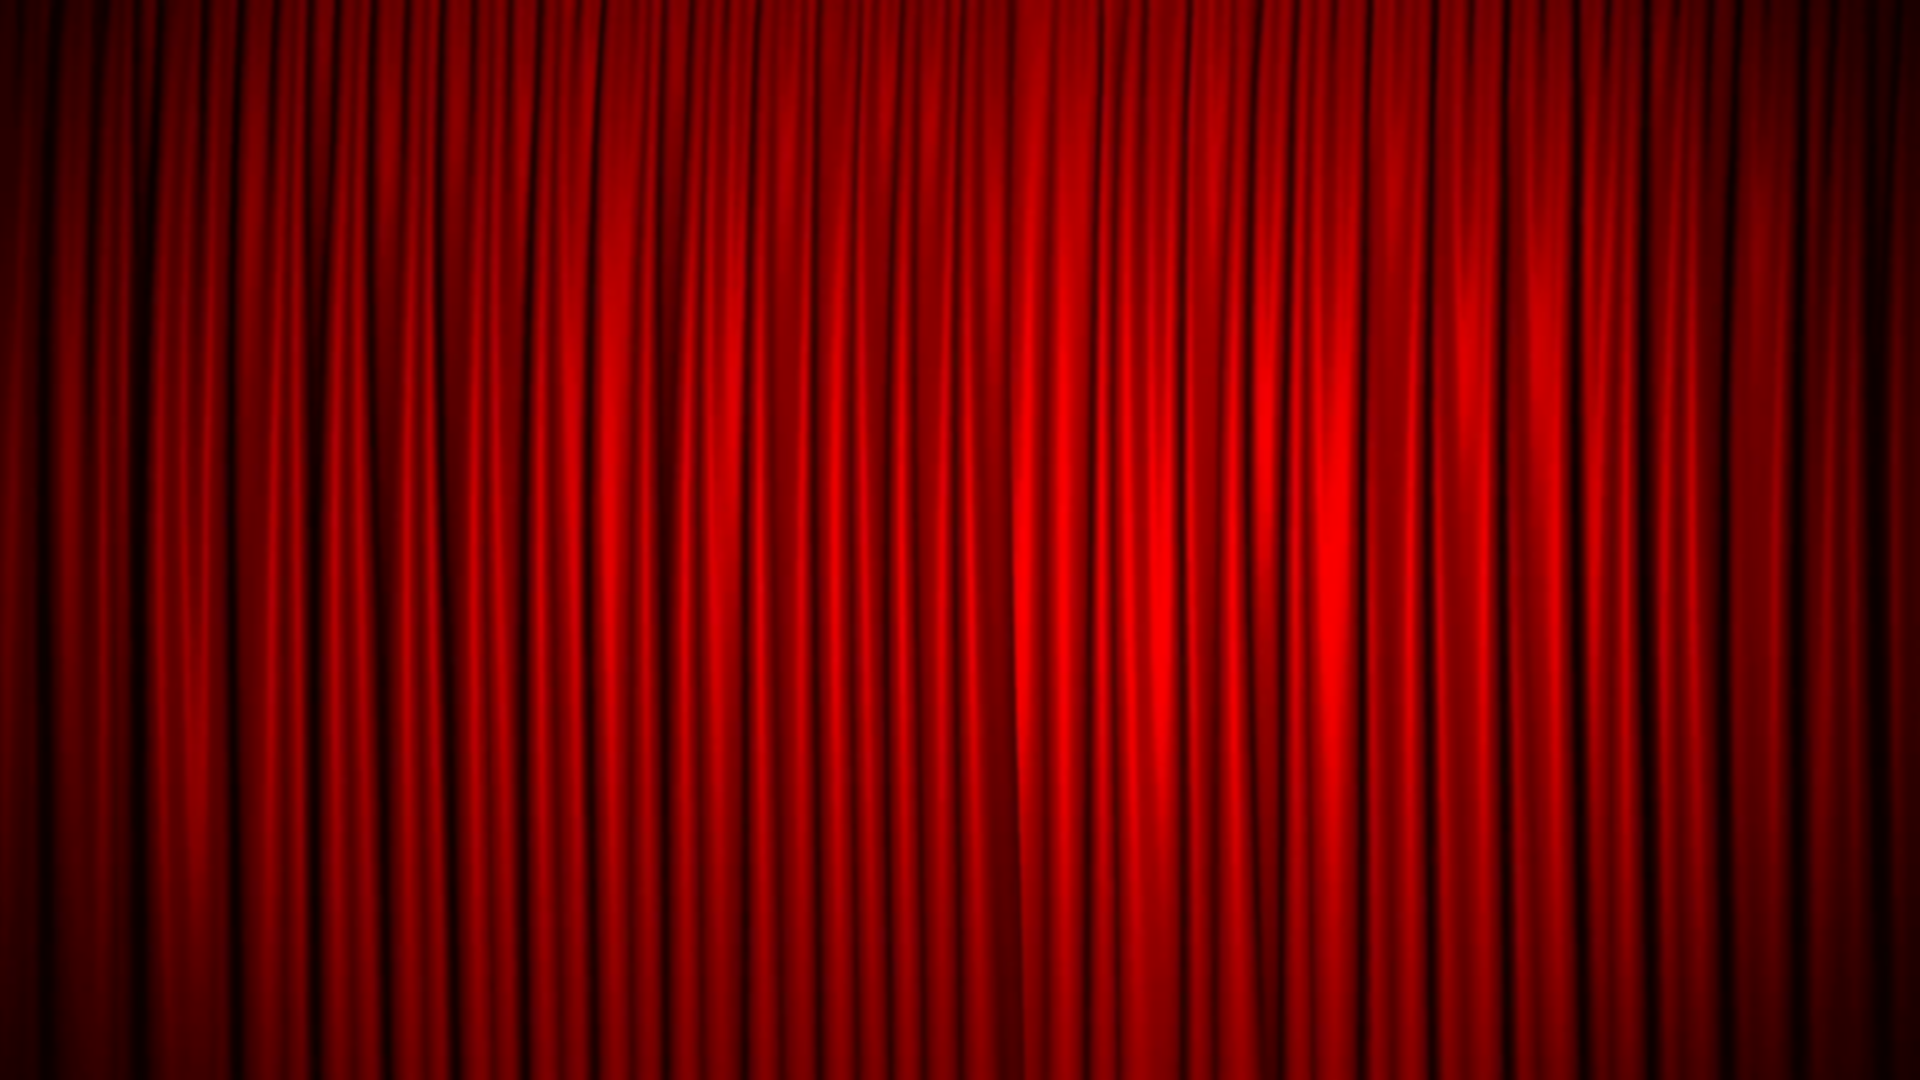 videoblocks-curtain-red-silk-loop-backgr